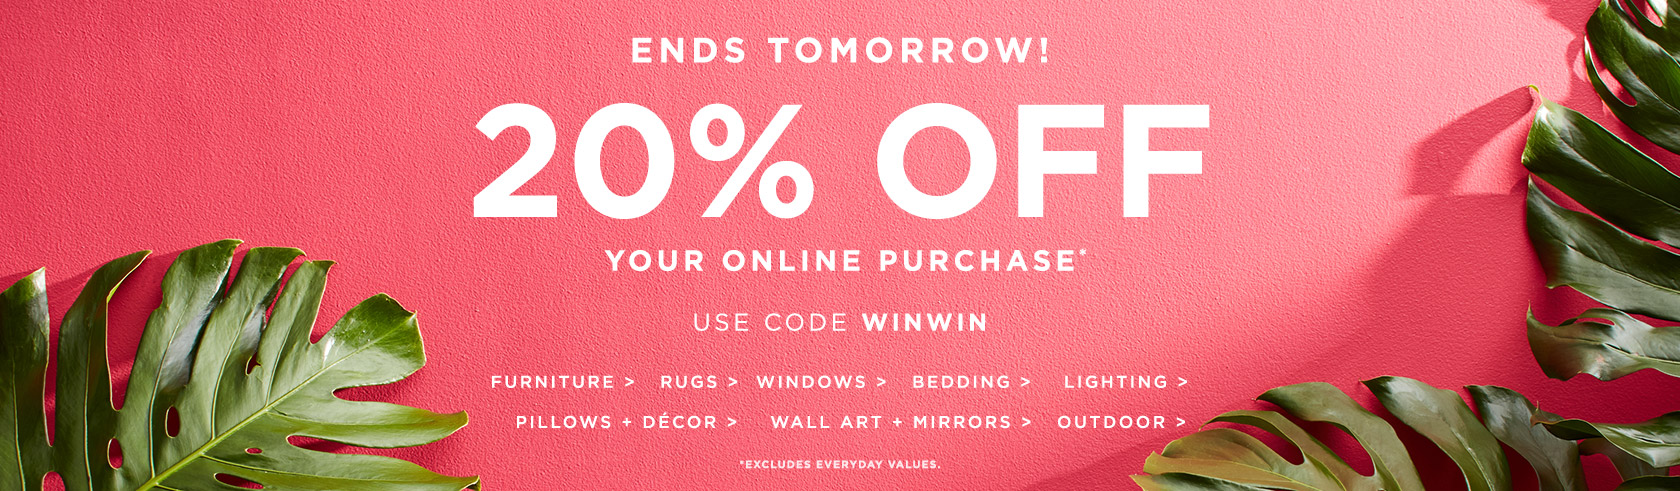 Ends Tomorrow! 20% Off Your Online Purchase! Use Code WINWIN